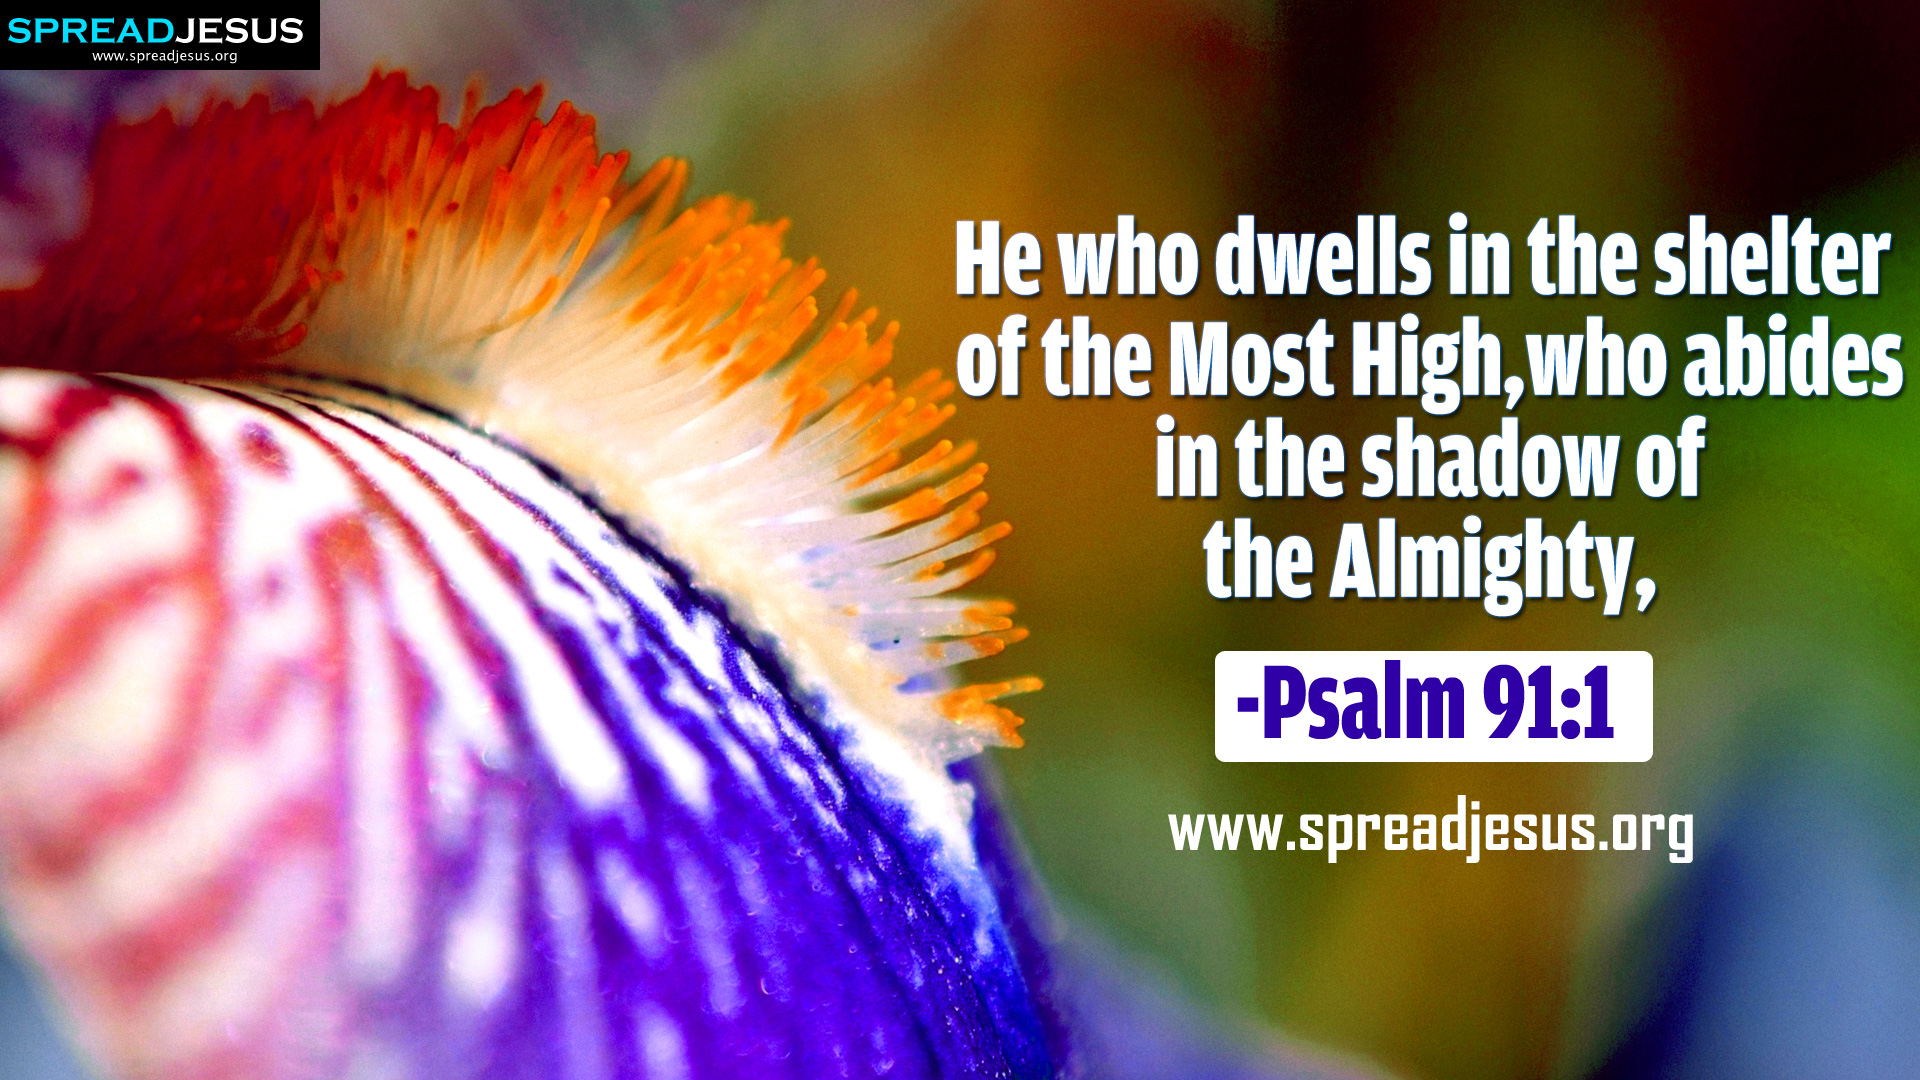 psalm high quality images psalm 91